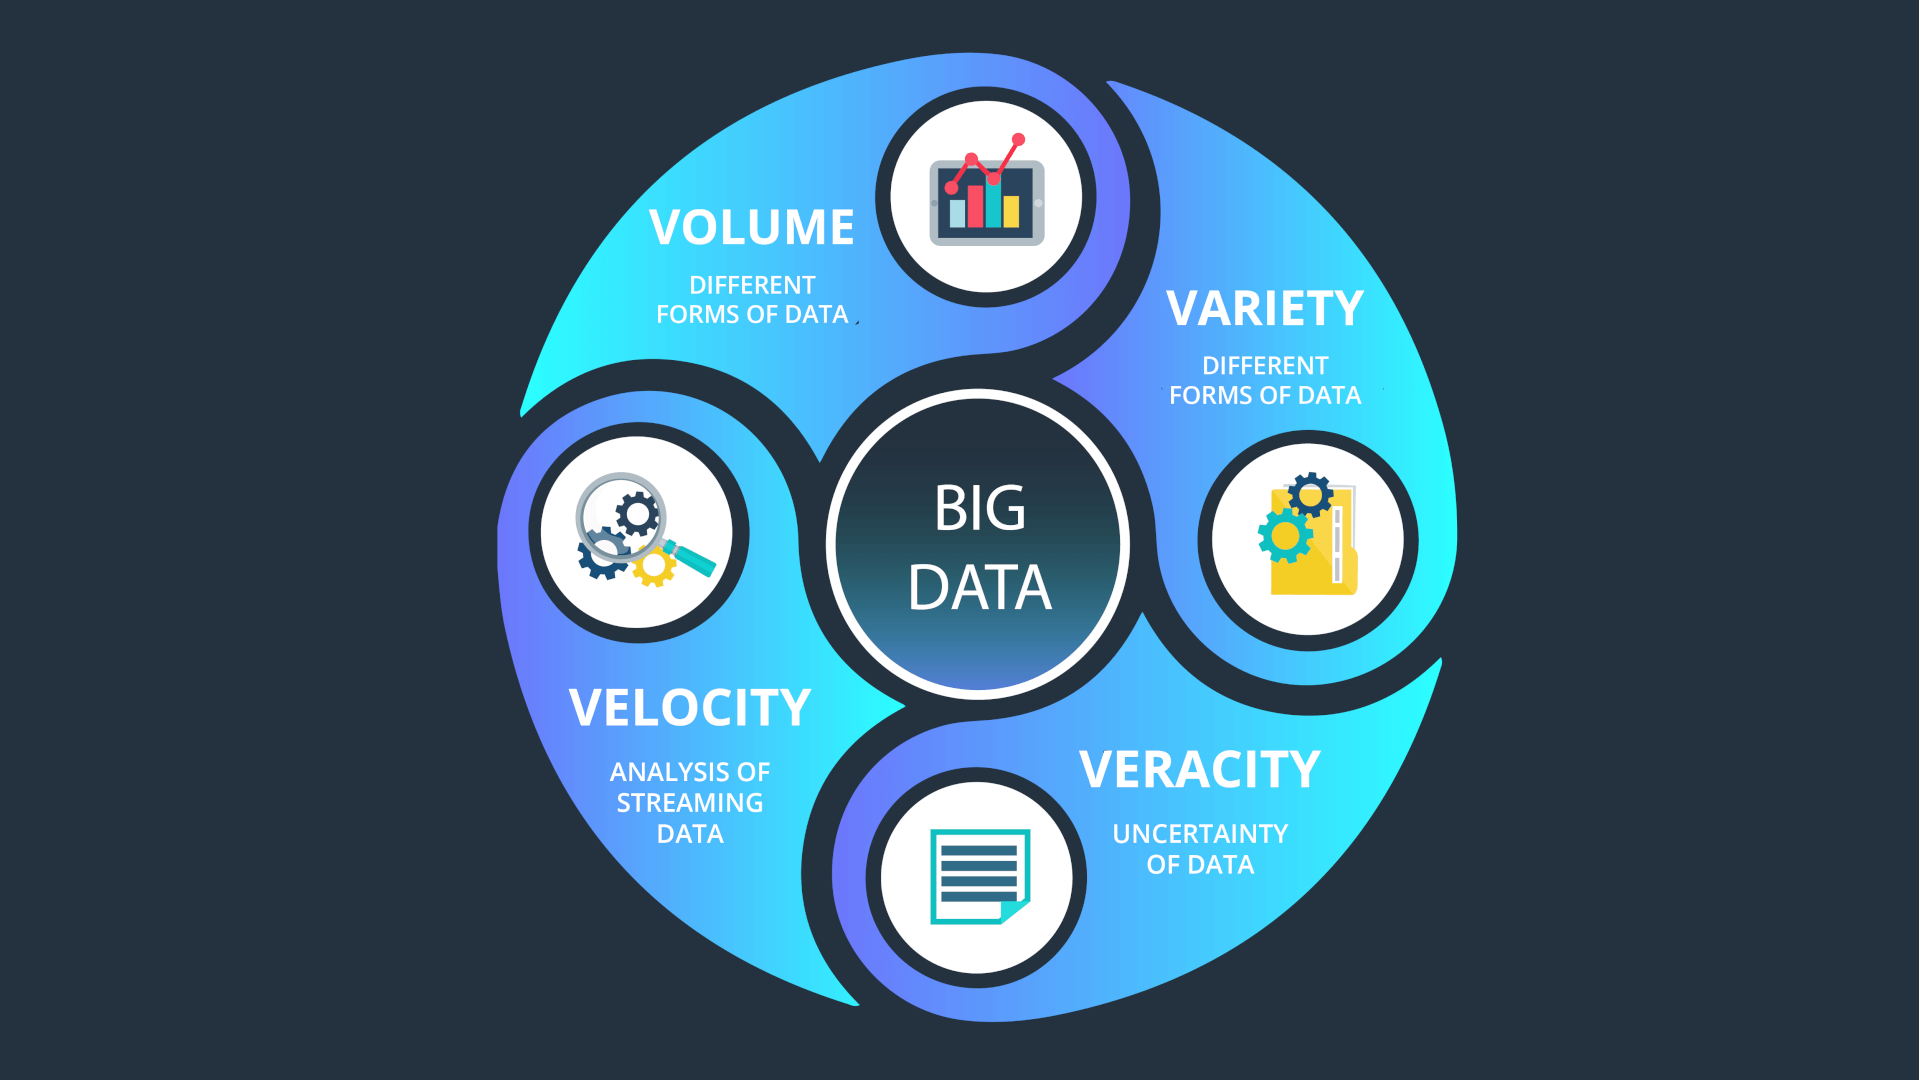 4 Vs of Big Data Basics